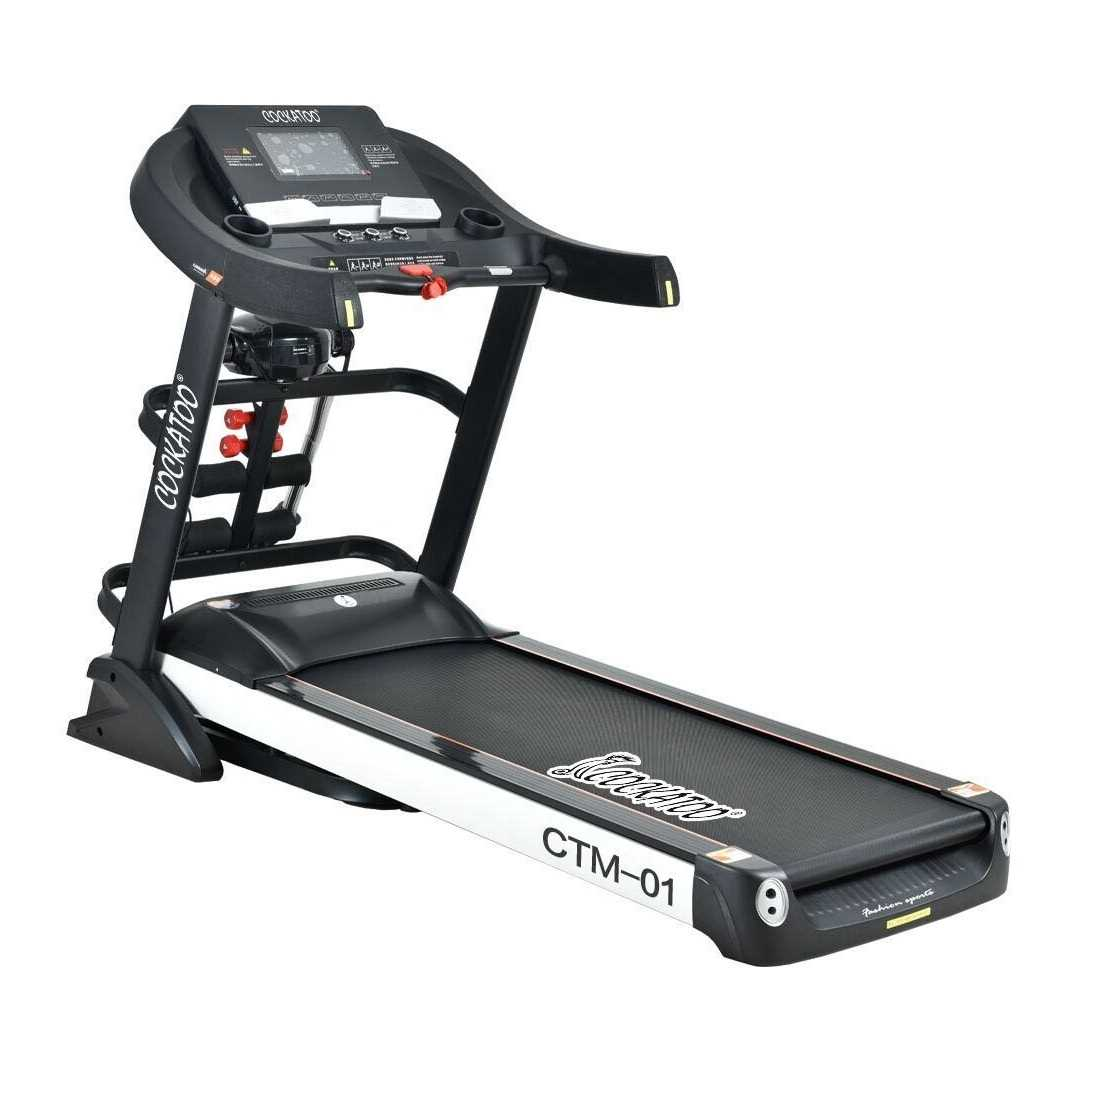 Cockatoo CTM-01 Motorised Treadmill